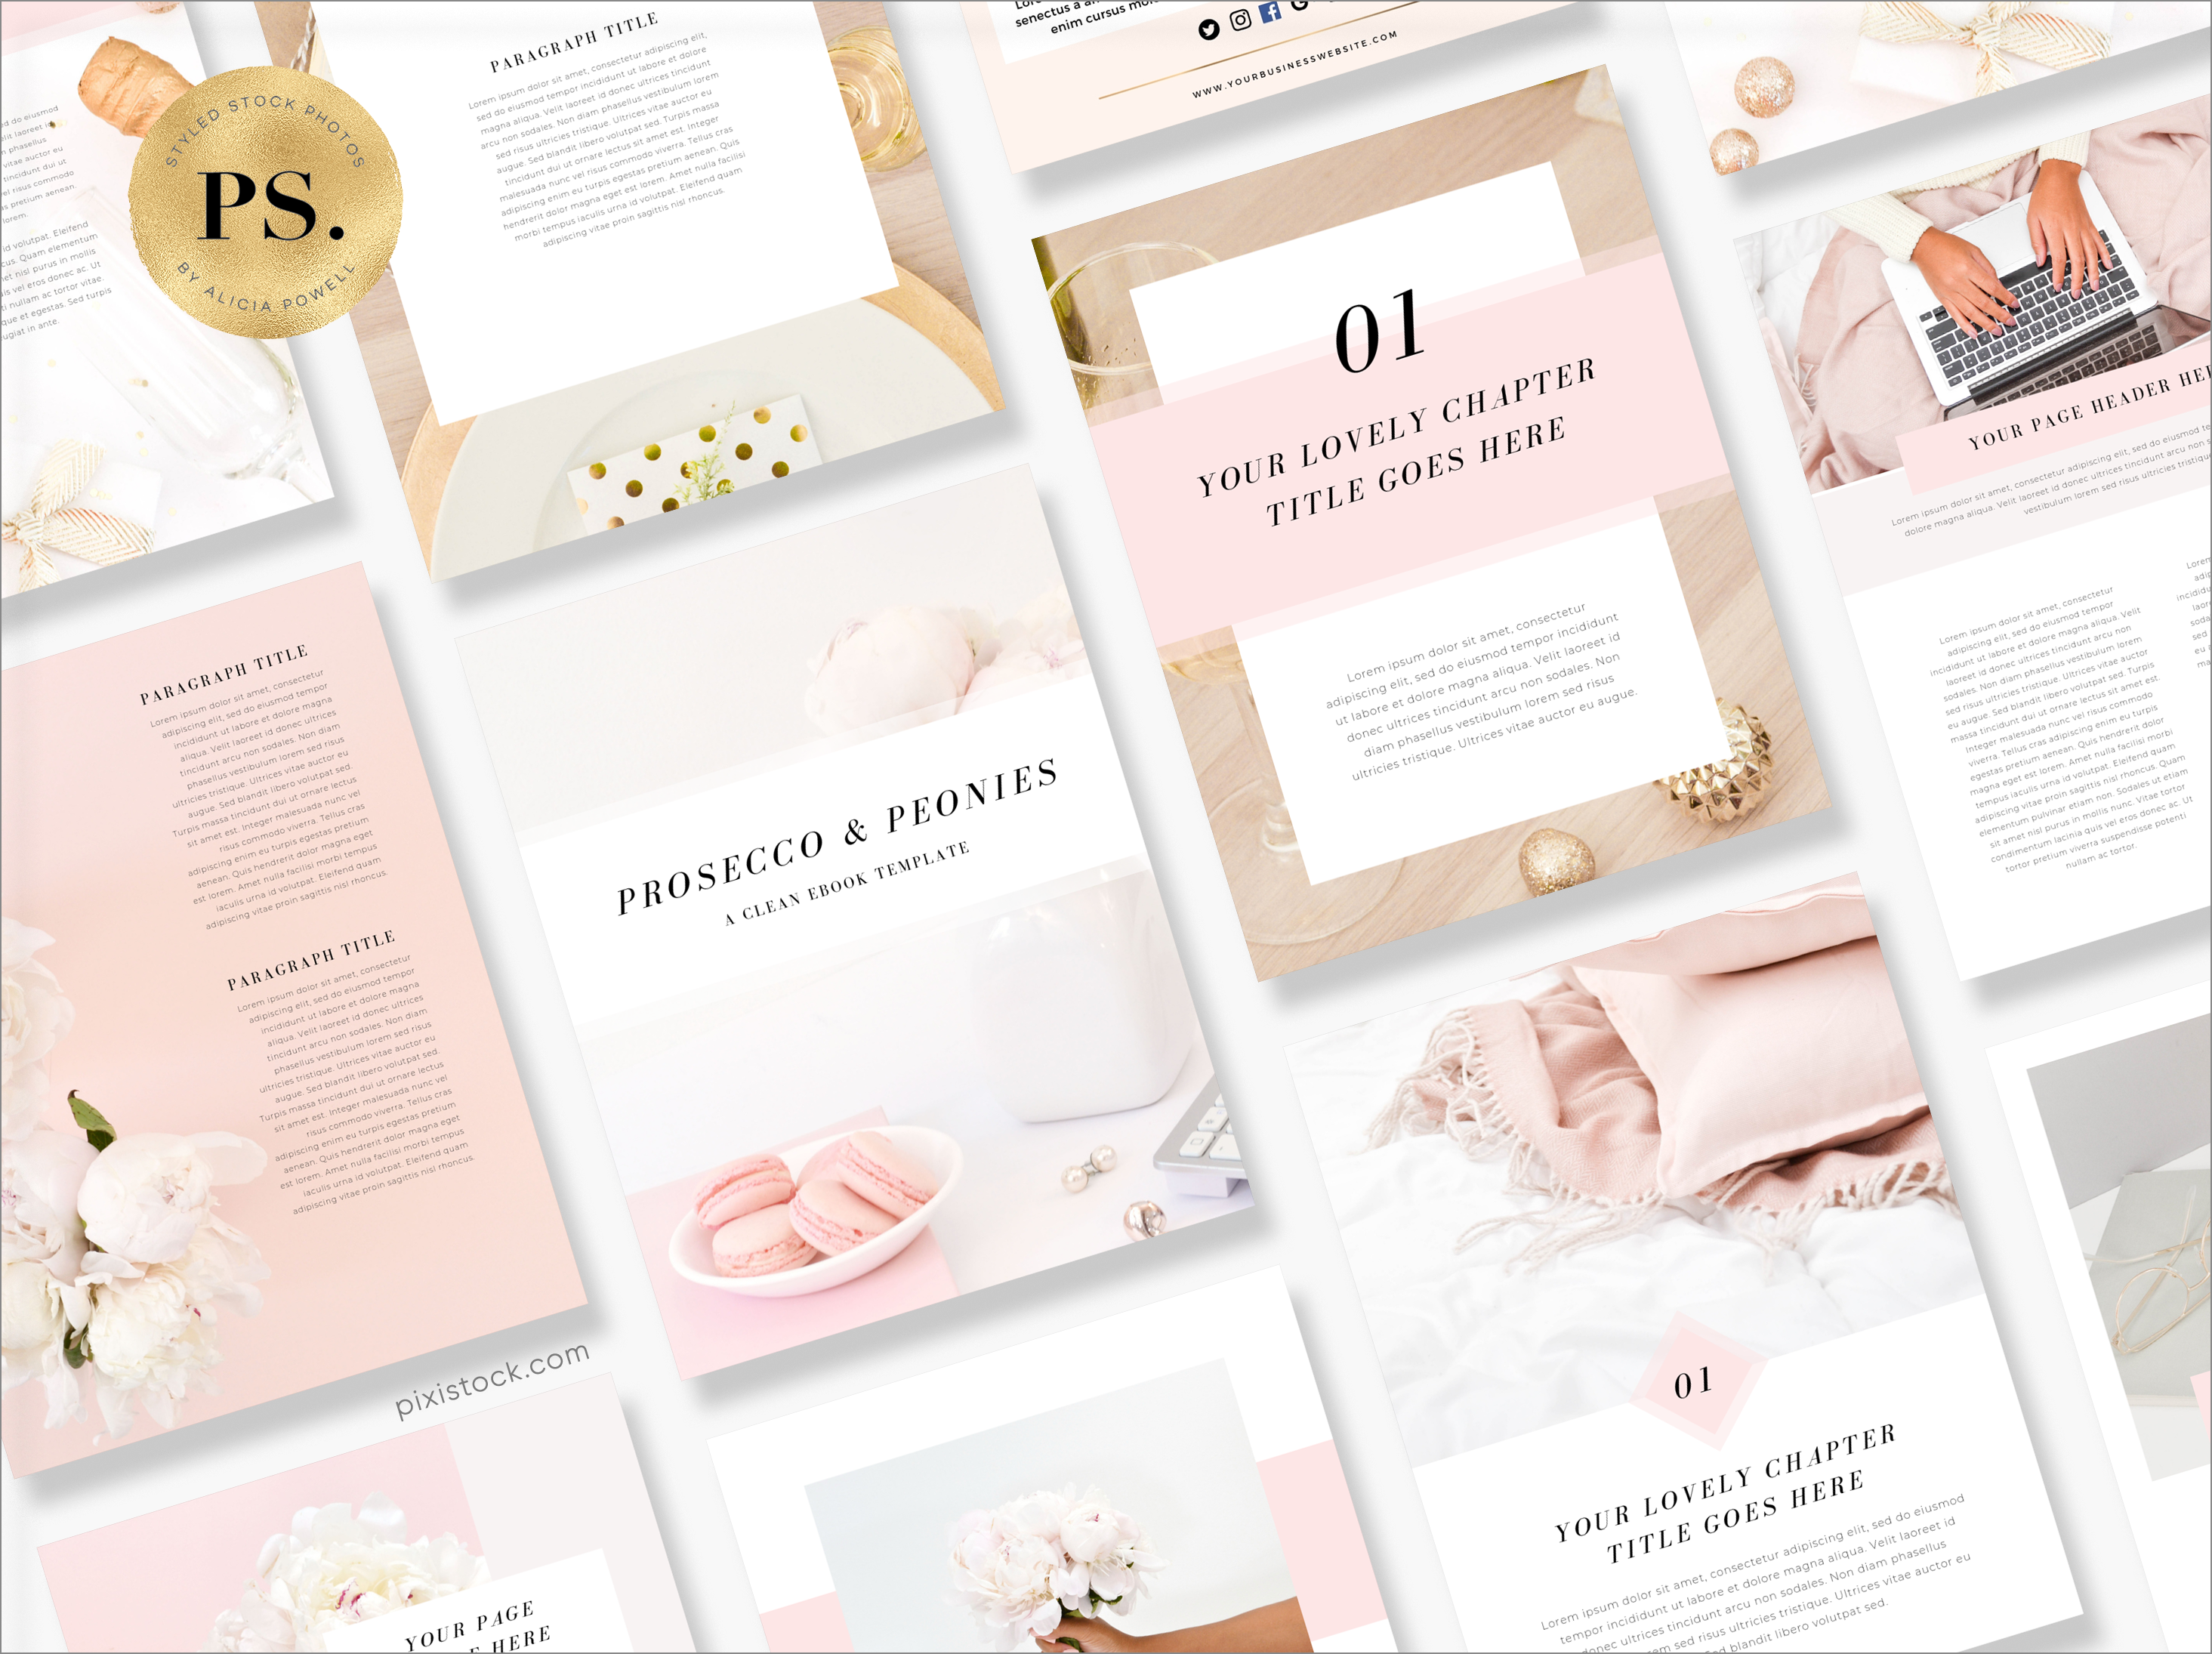 Canva Template Ebook by Pixistock - Proseco & Peonies